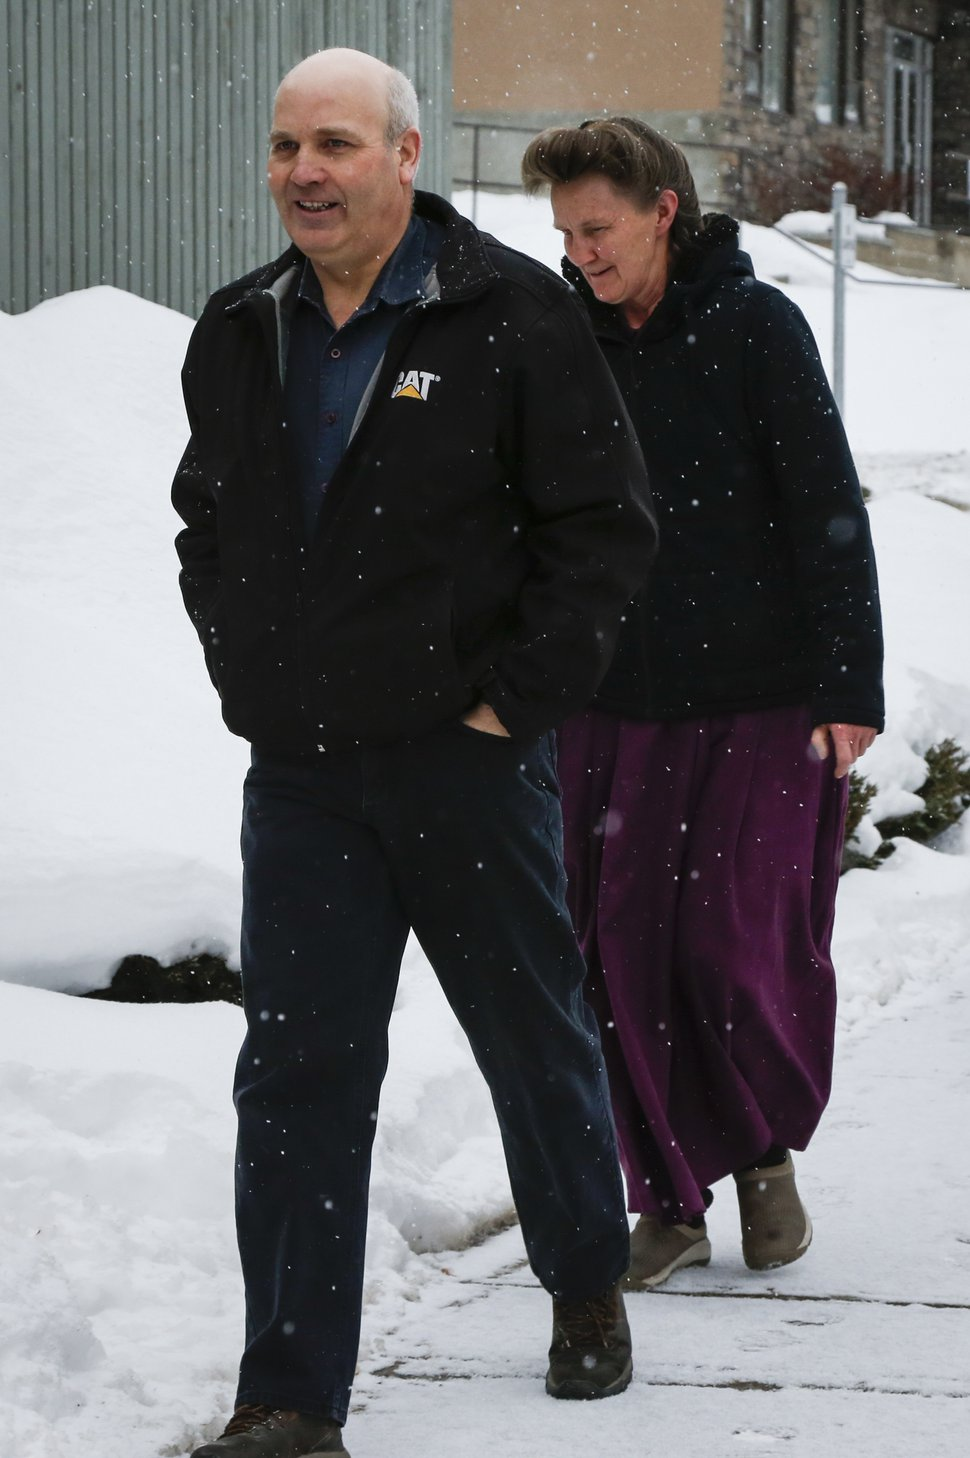 FILE - In this Feb. 3, 2017, file photo, Gail Blackmore, right, and James Oler arrive at the courthouse in Cranbrook, British Columbia. Two former bishops of an isolated religious commune in British Columbia were convicted Monday, July 24, of practicing polygamy after a decadeslong legal fight launched by the provincial government. The court found James Oler married five women in so-called